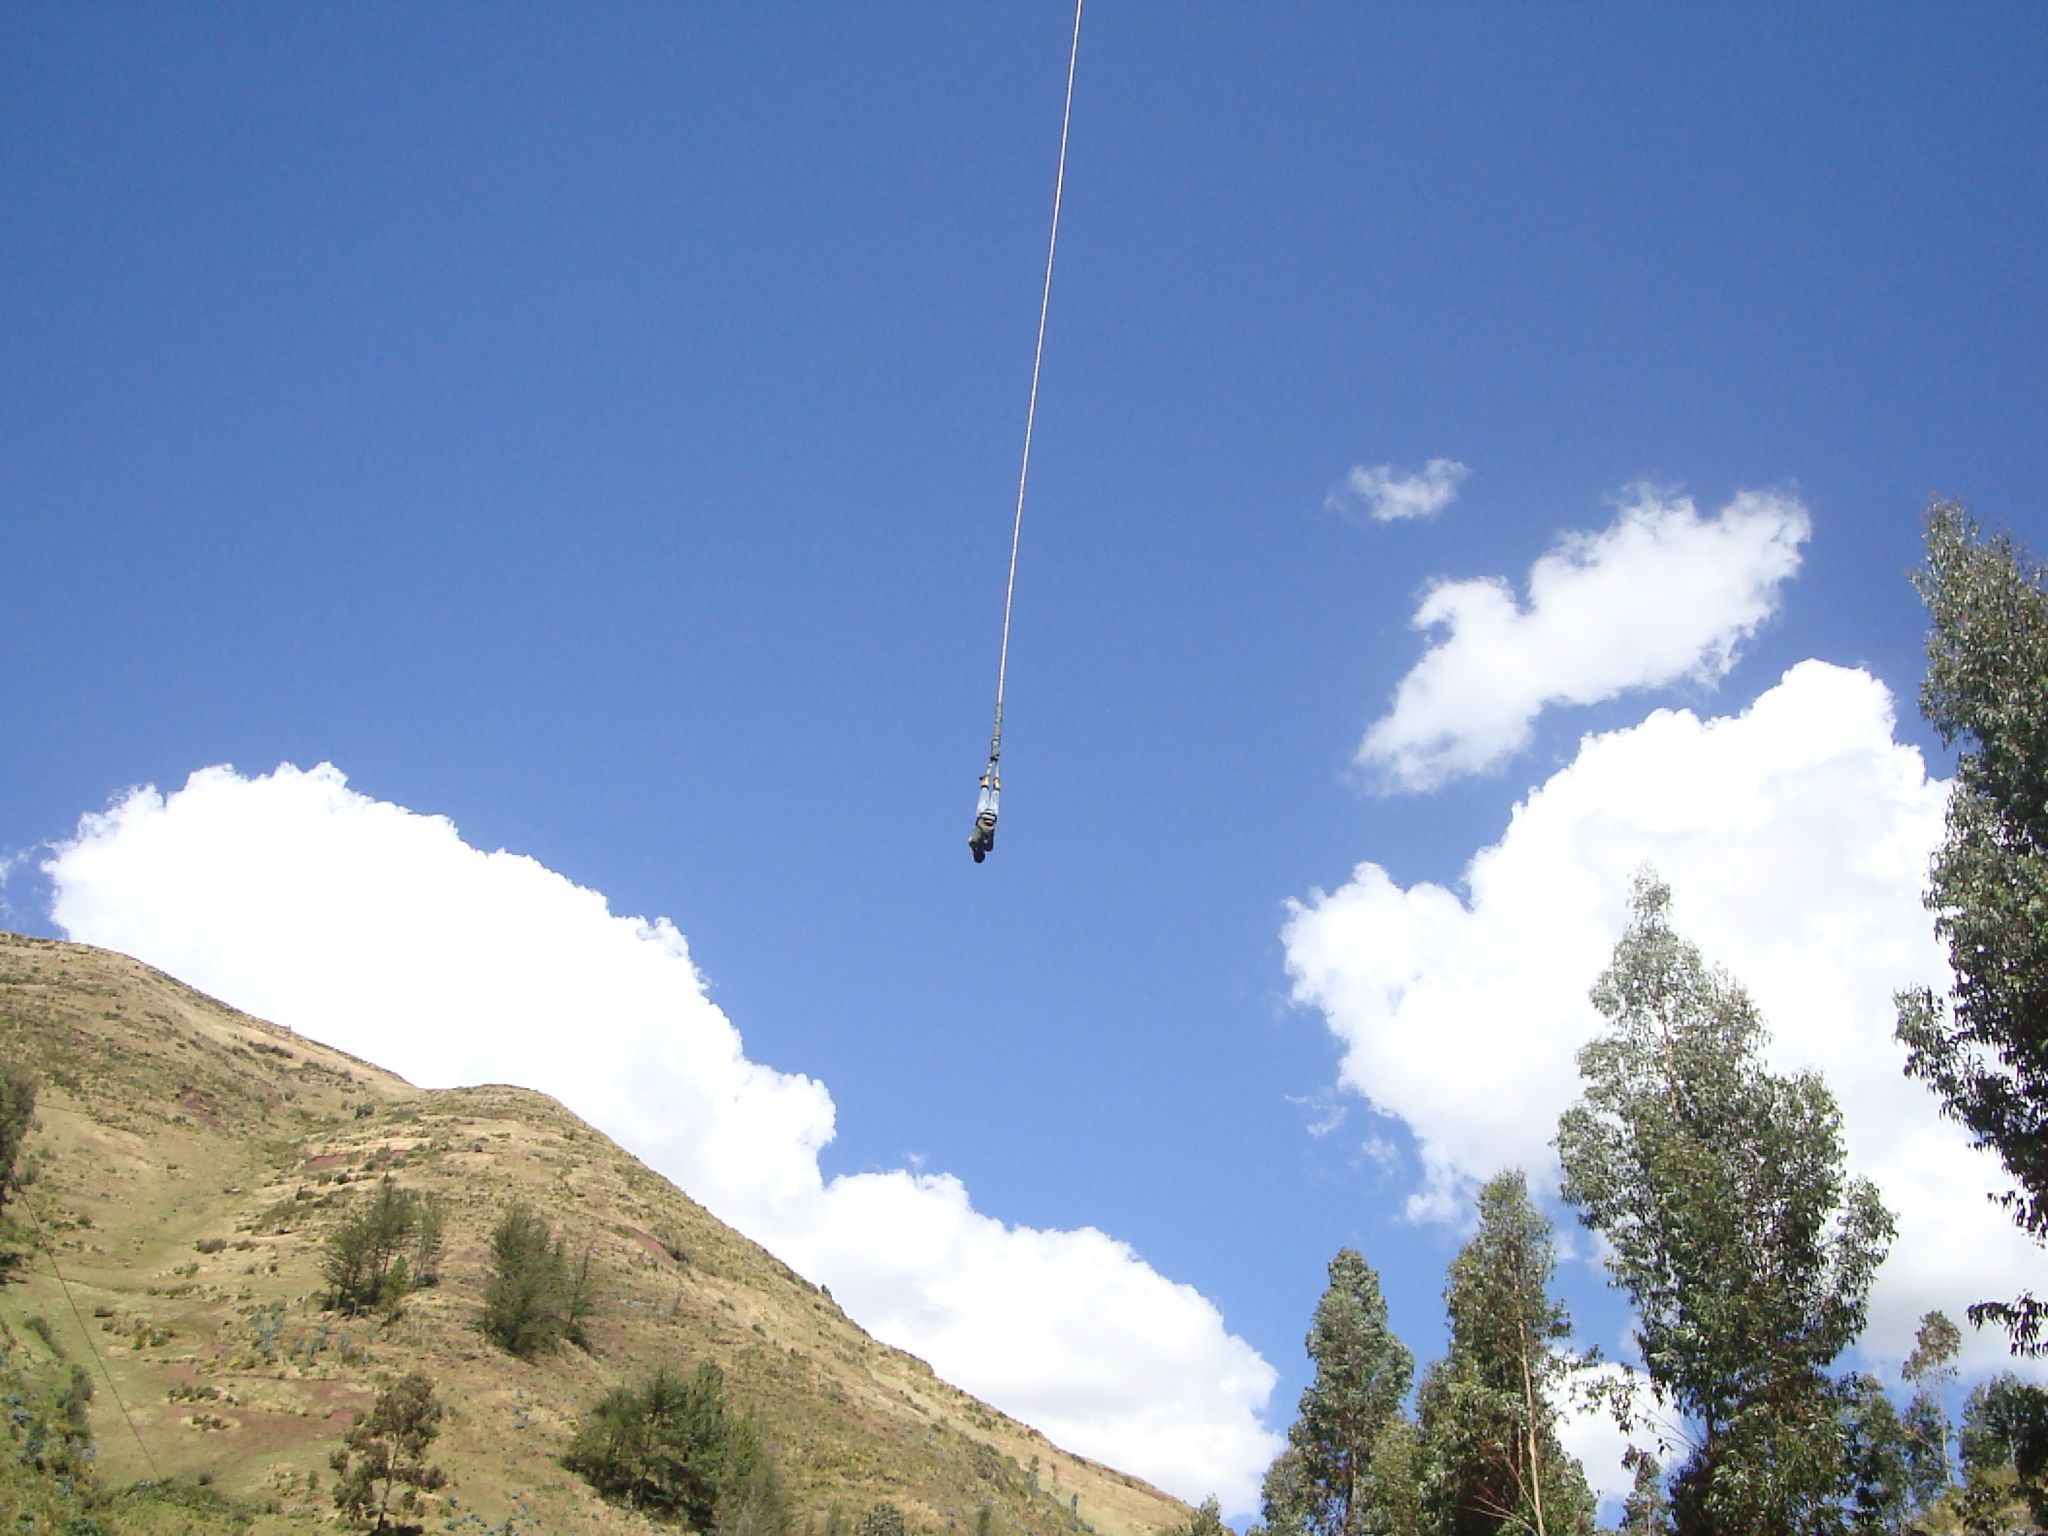 Bungee Jump at Action Valley (Cuzco, Peru)